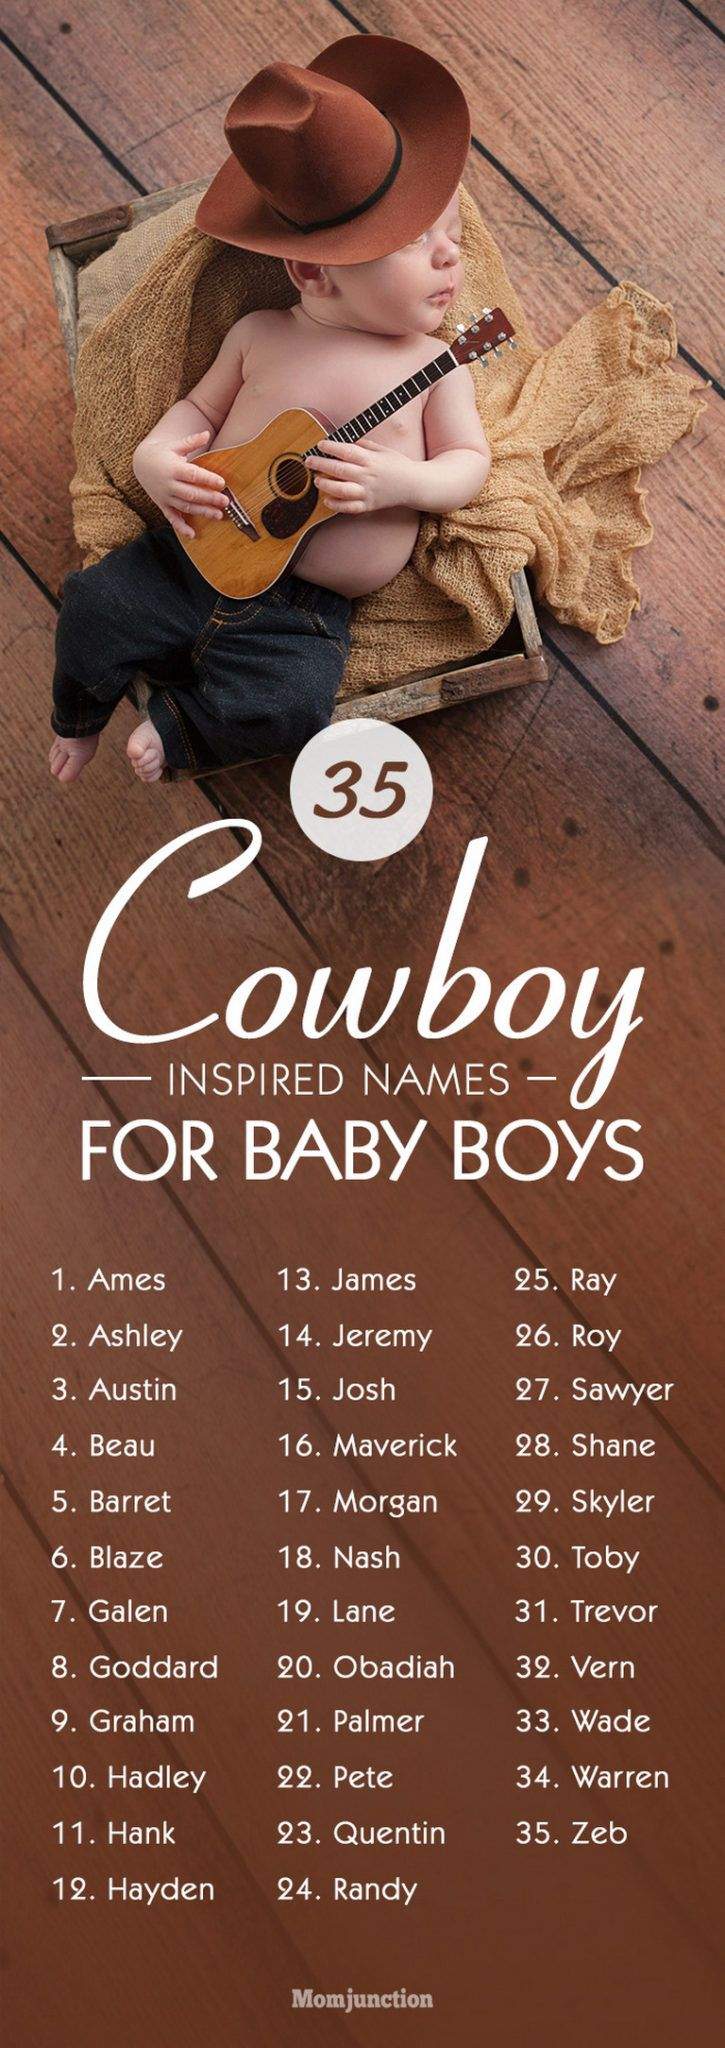 100 Ideas Cool And Unusual Names For Baby Boys Girls